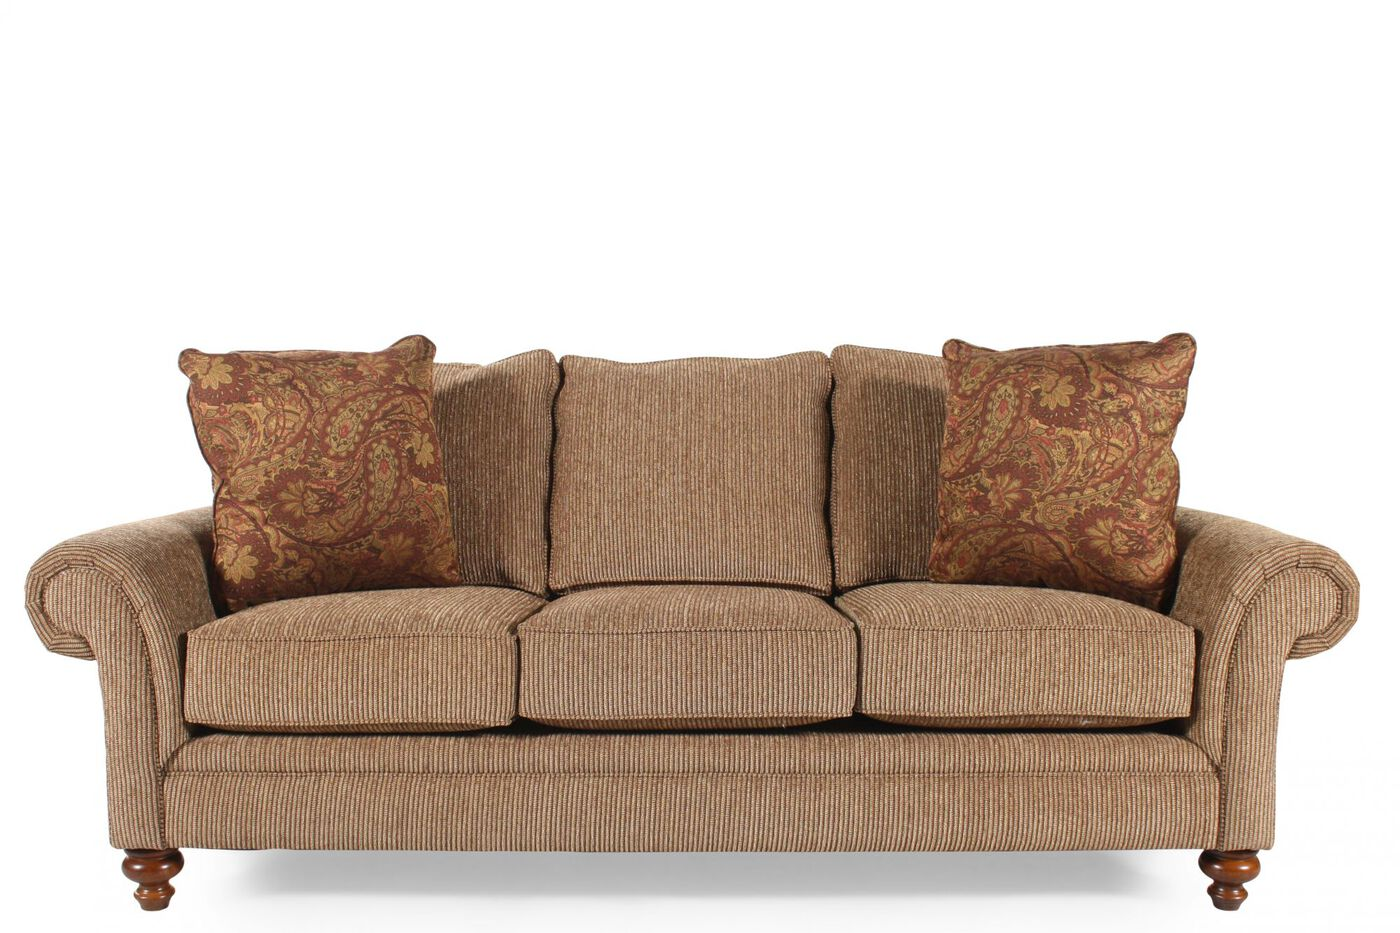 """Corduroy Casual 88"""" Sofa In Nutbrown  Mathis Brothers. Small Room Design Ideas. Pkr Games Room. Georgetown Dorm Rooms. The Ultimate Gaming Room. Stylish Room Divider. 8 Ft Tall Room Dividers. Open Plan Kitchen Dining Room Designs Ideas. Wall Designs For Living Room"""